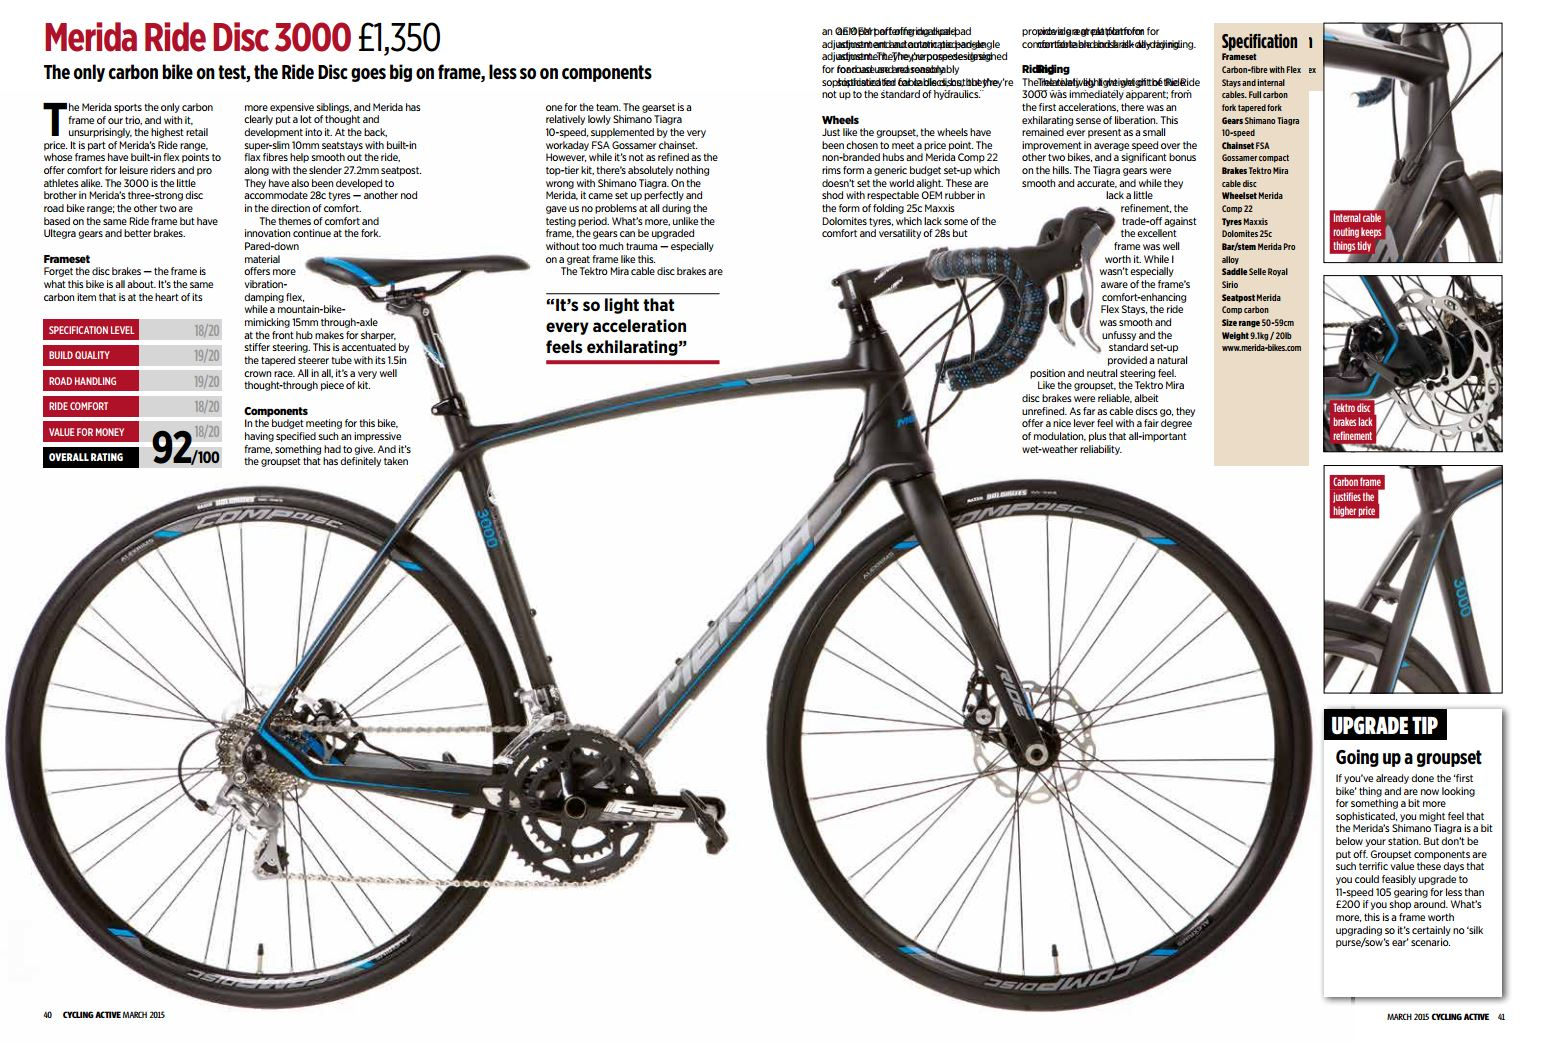 Merida Ride Disc 3000 Review